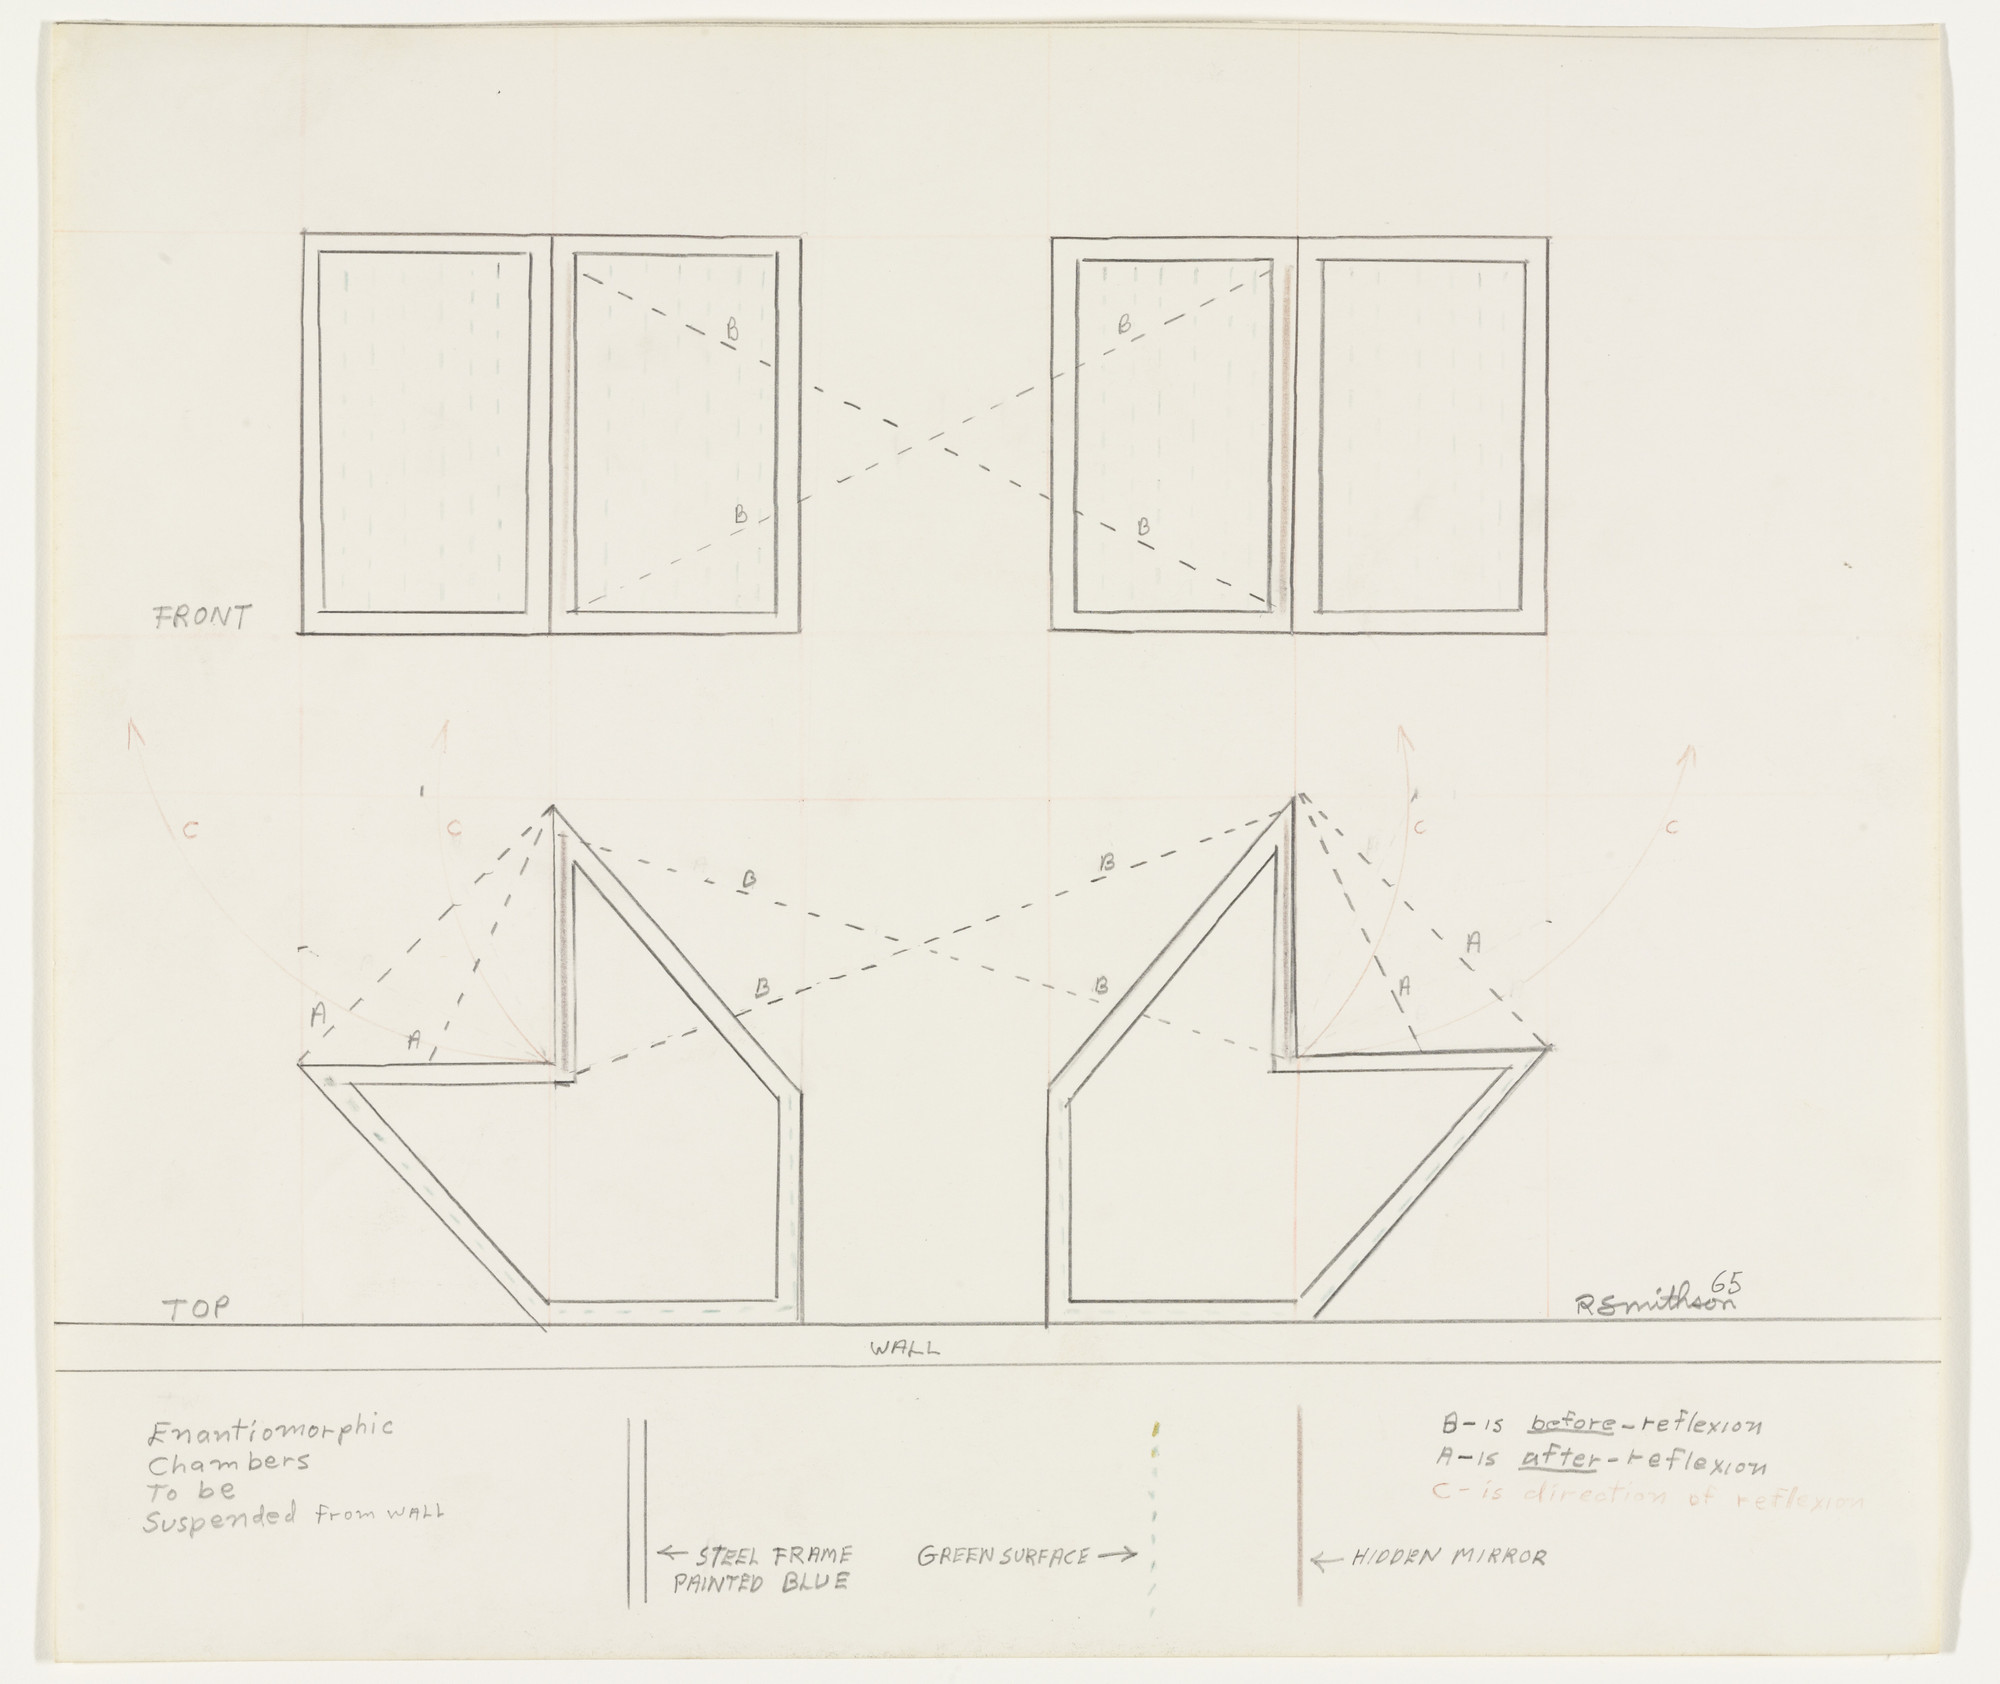 Robert Smithson. Drawing of Enantiomorphic Chambers. 1965